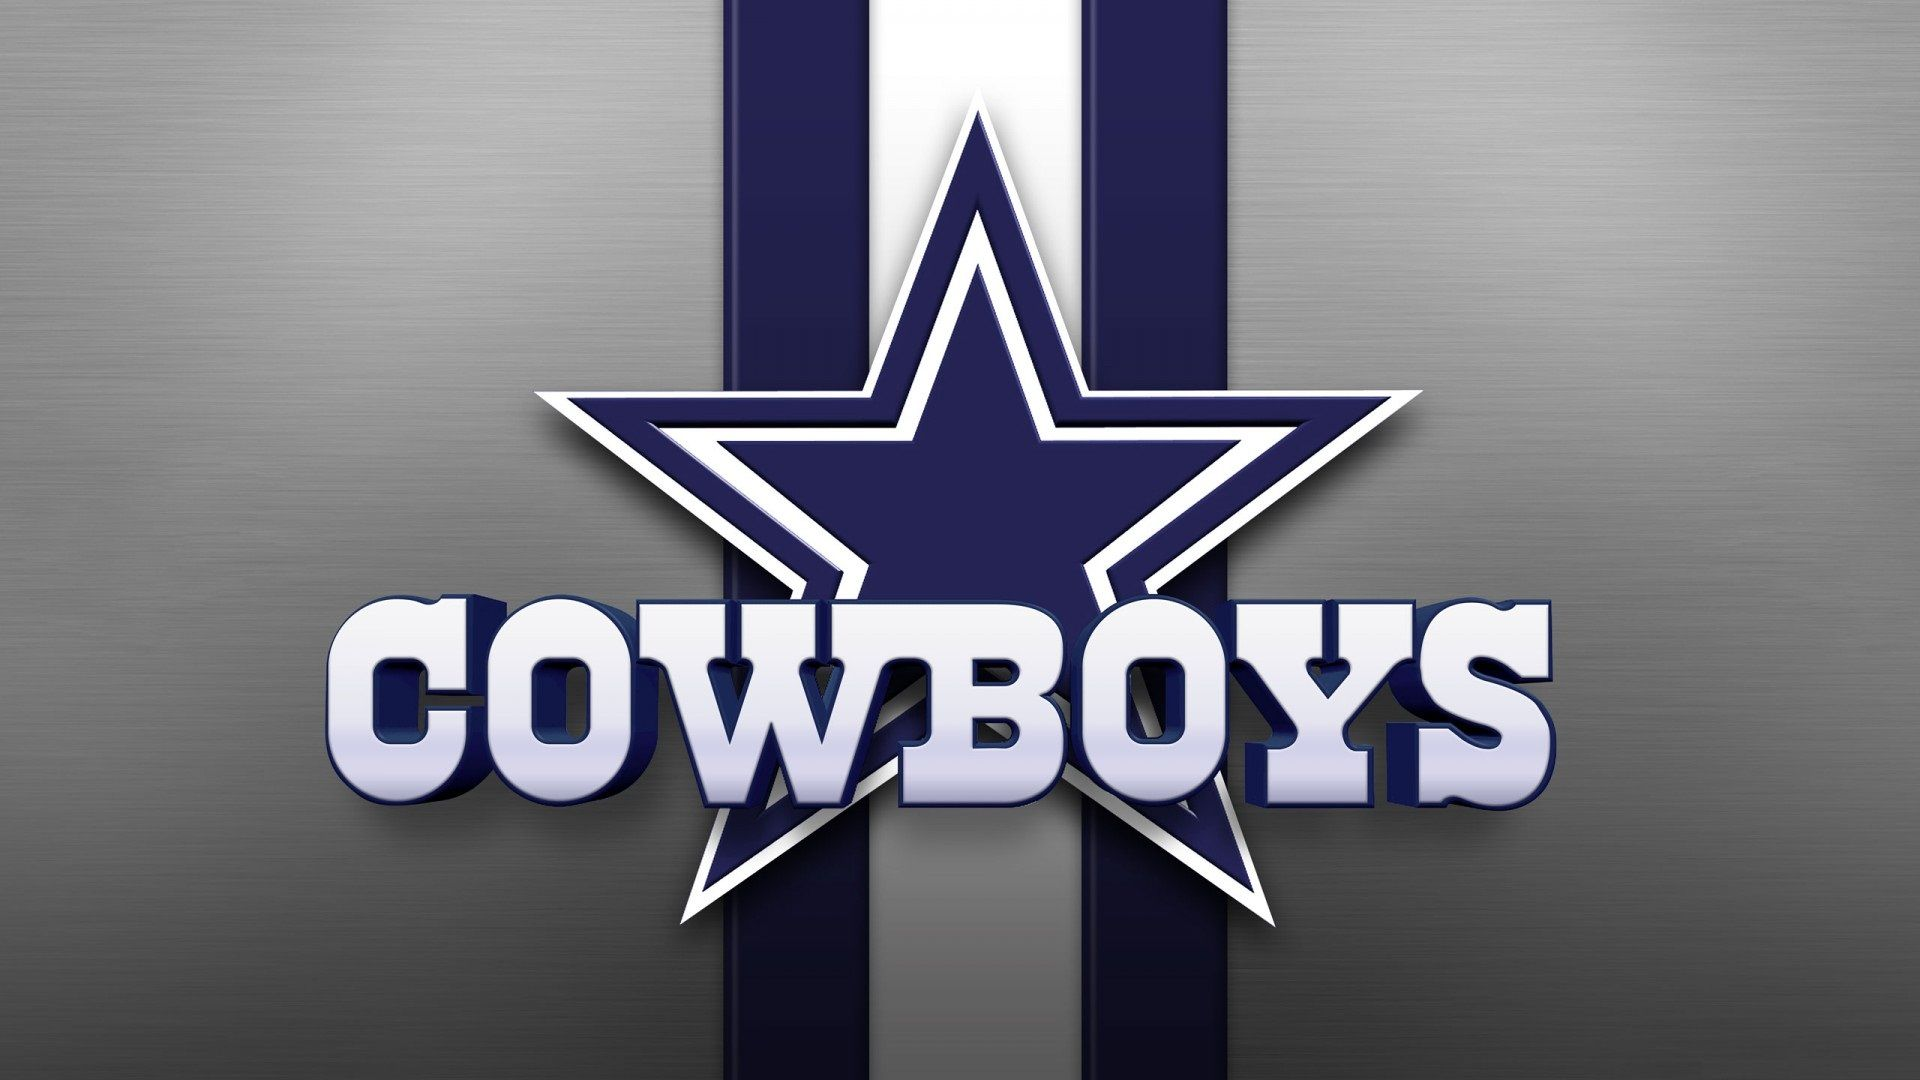 Hd Cowboys Wallpaper 2018 Wallpapers And